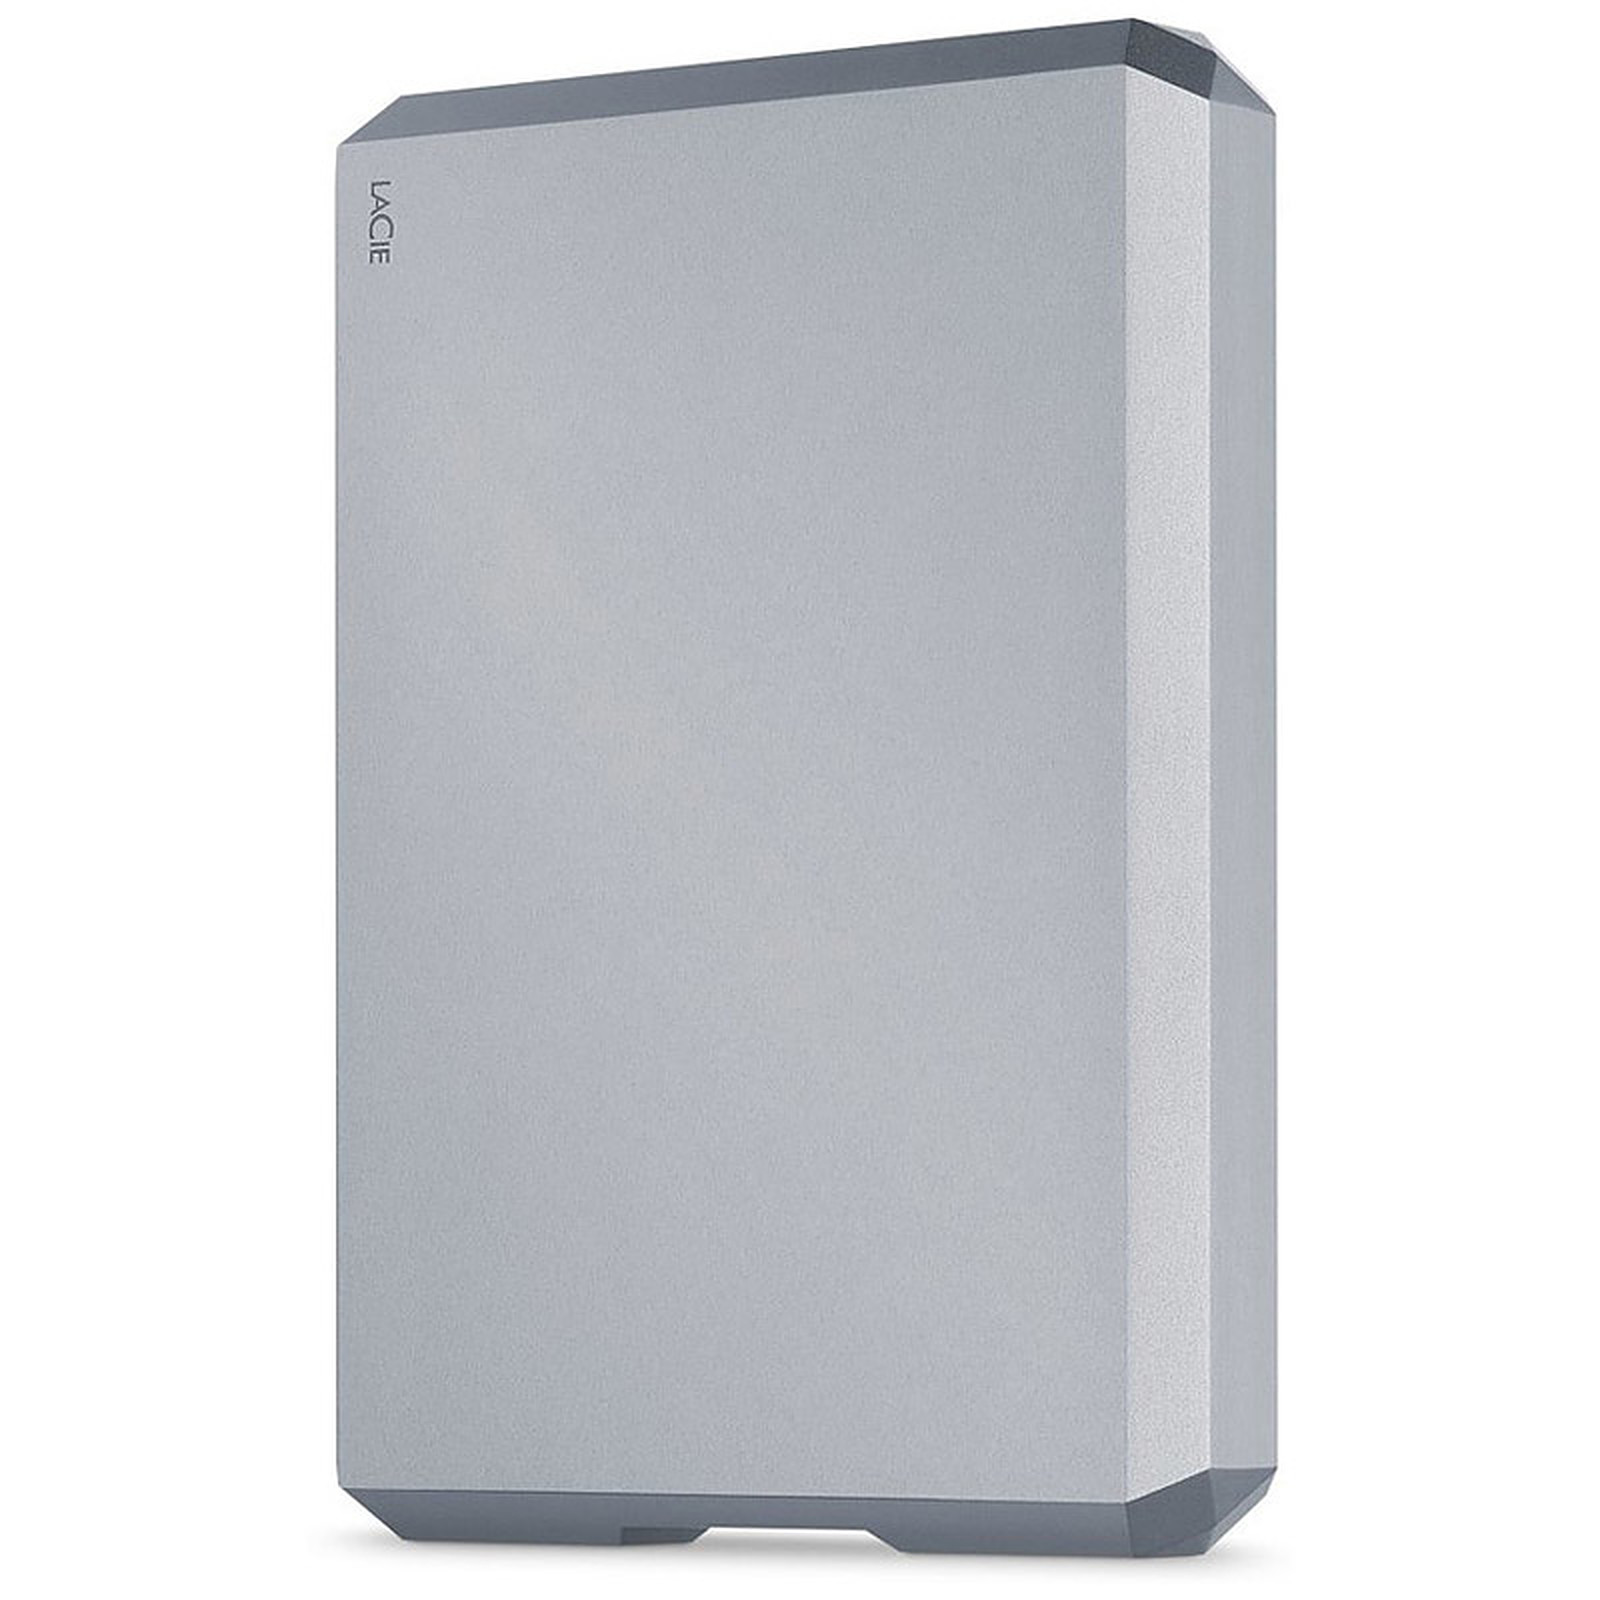 LaCie Mobile Drive 5 To Space Gray  (USB 3.1 Type-C)